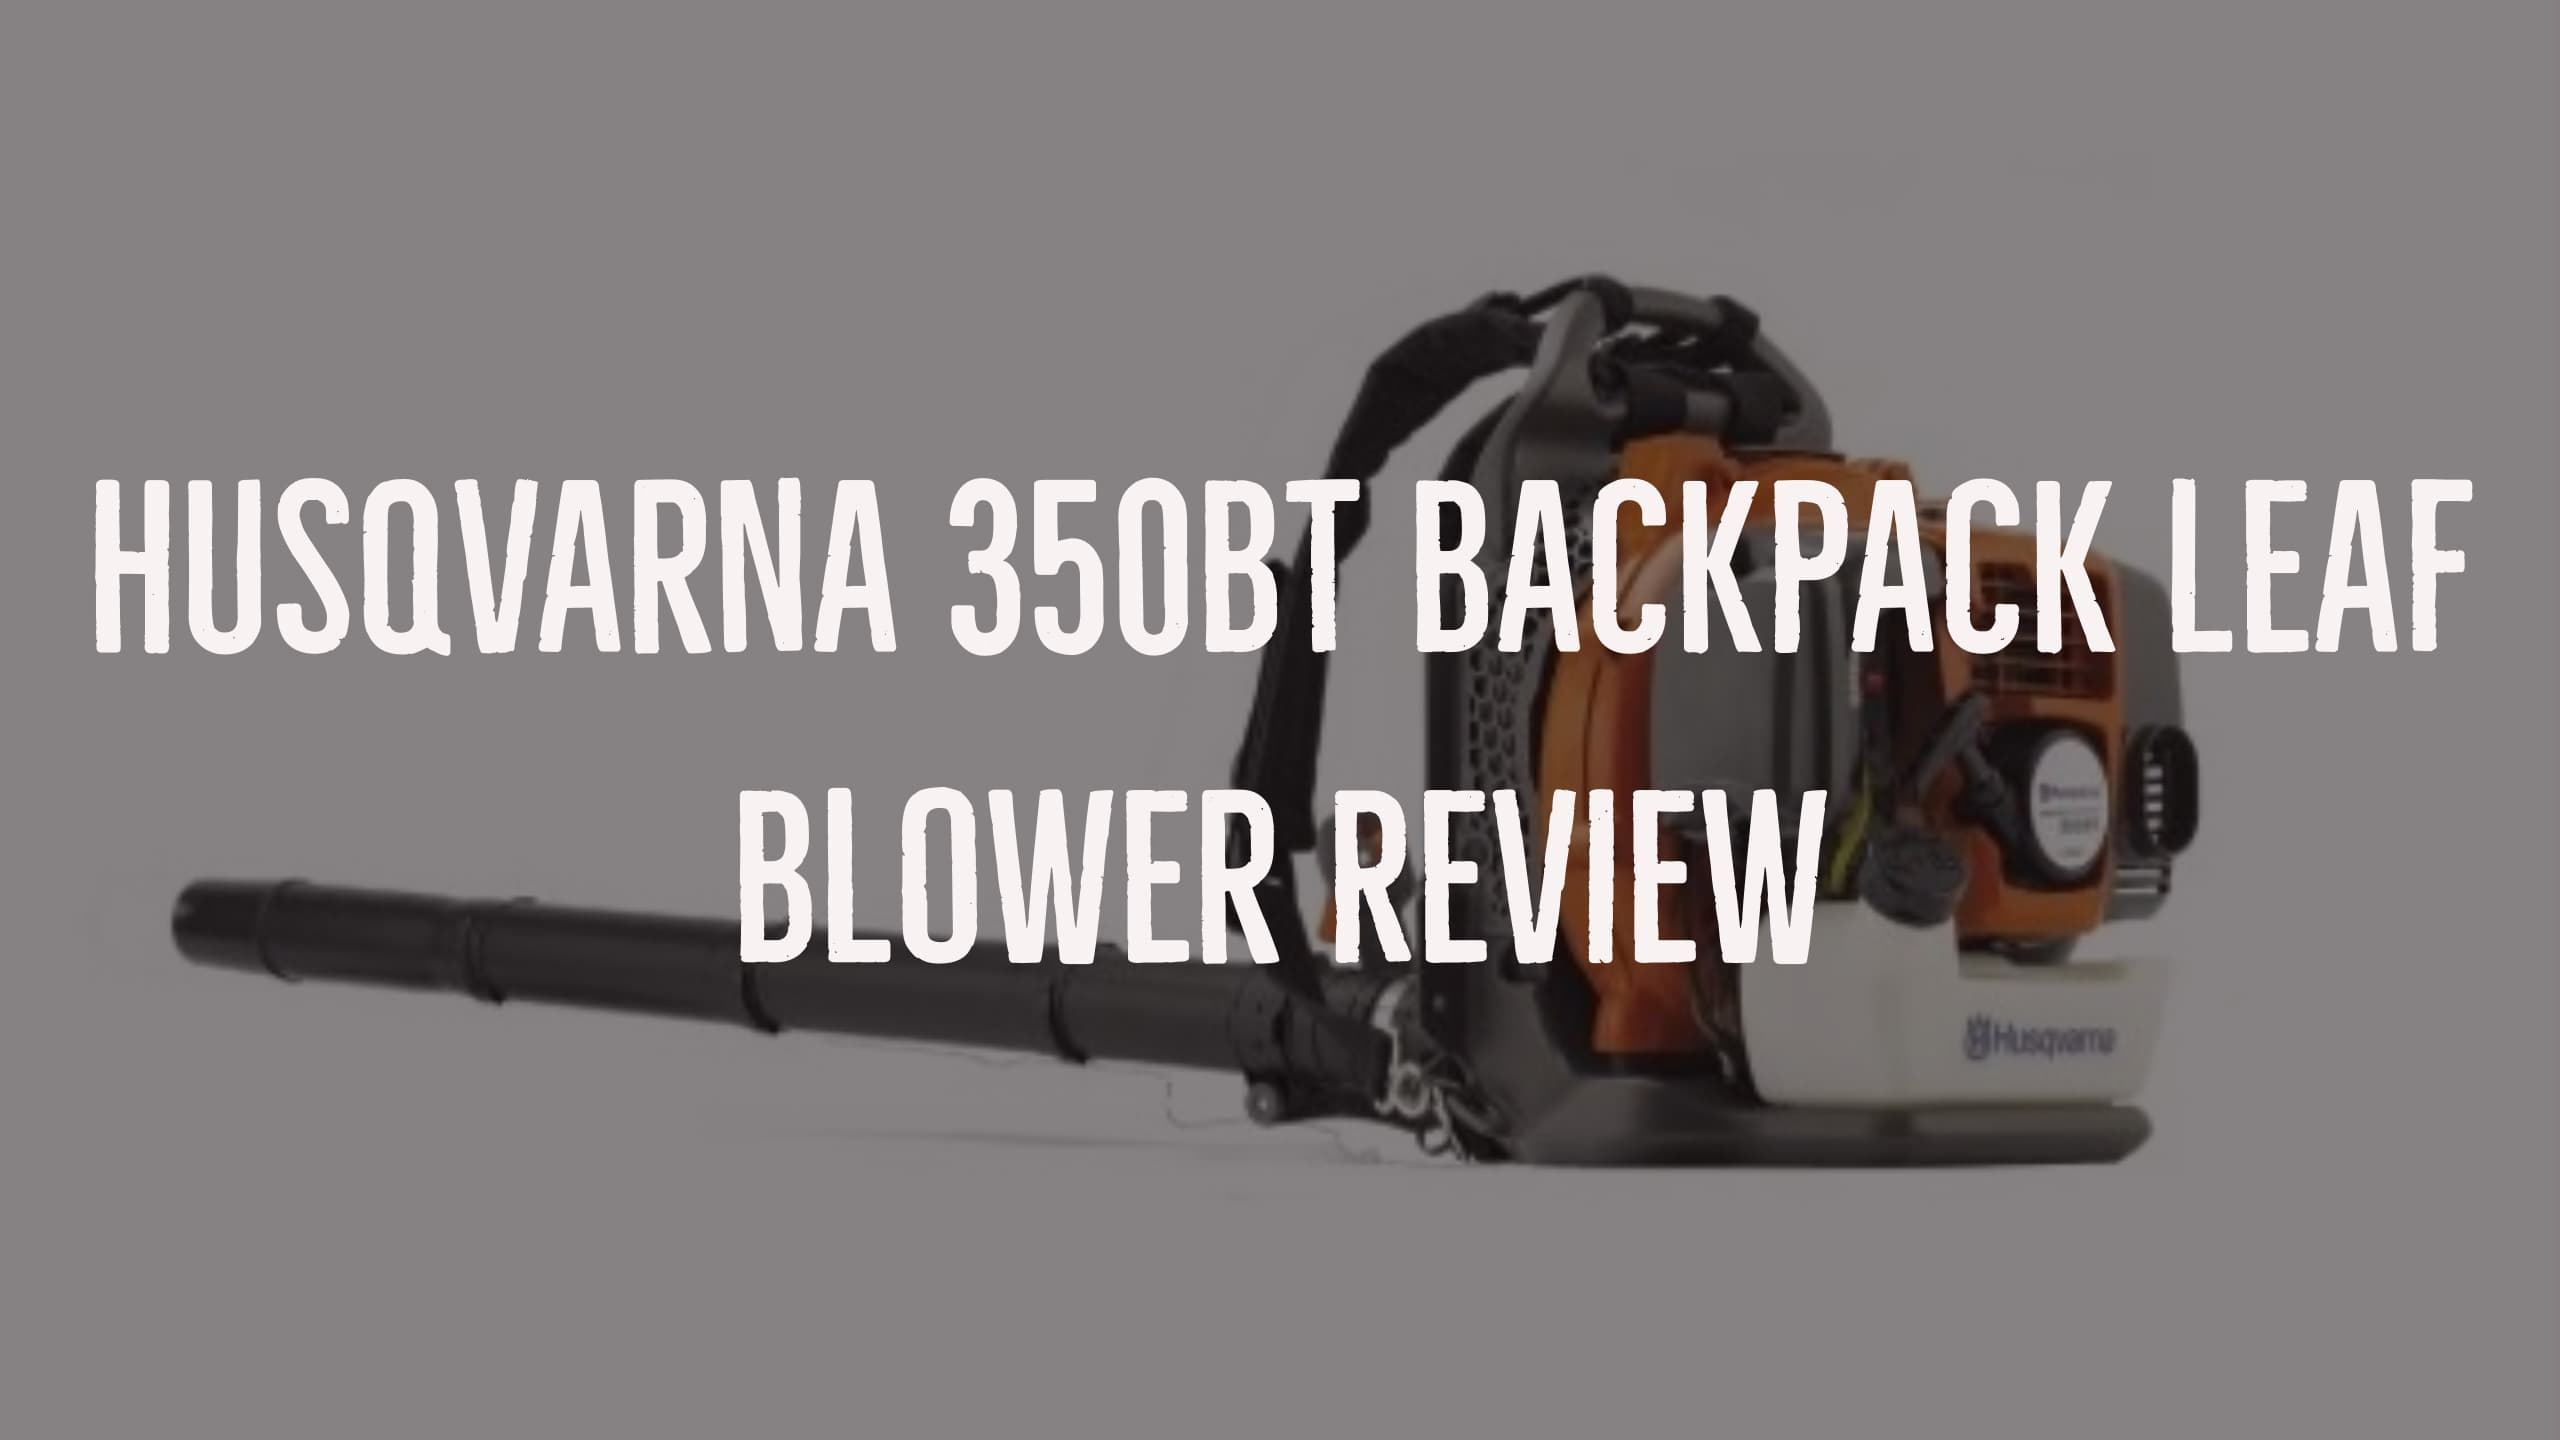 Husqvarna 350BT Backpack Leaf Blower Review, Pros & Cons